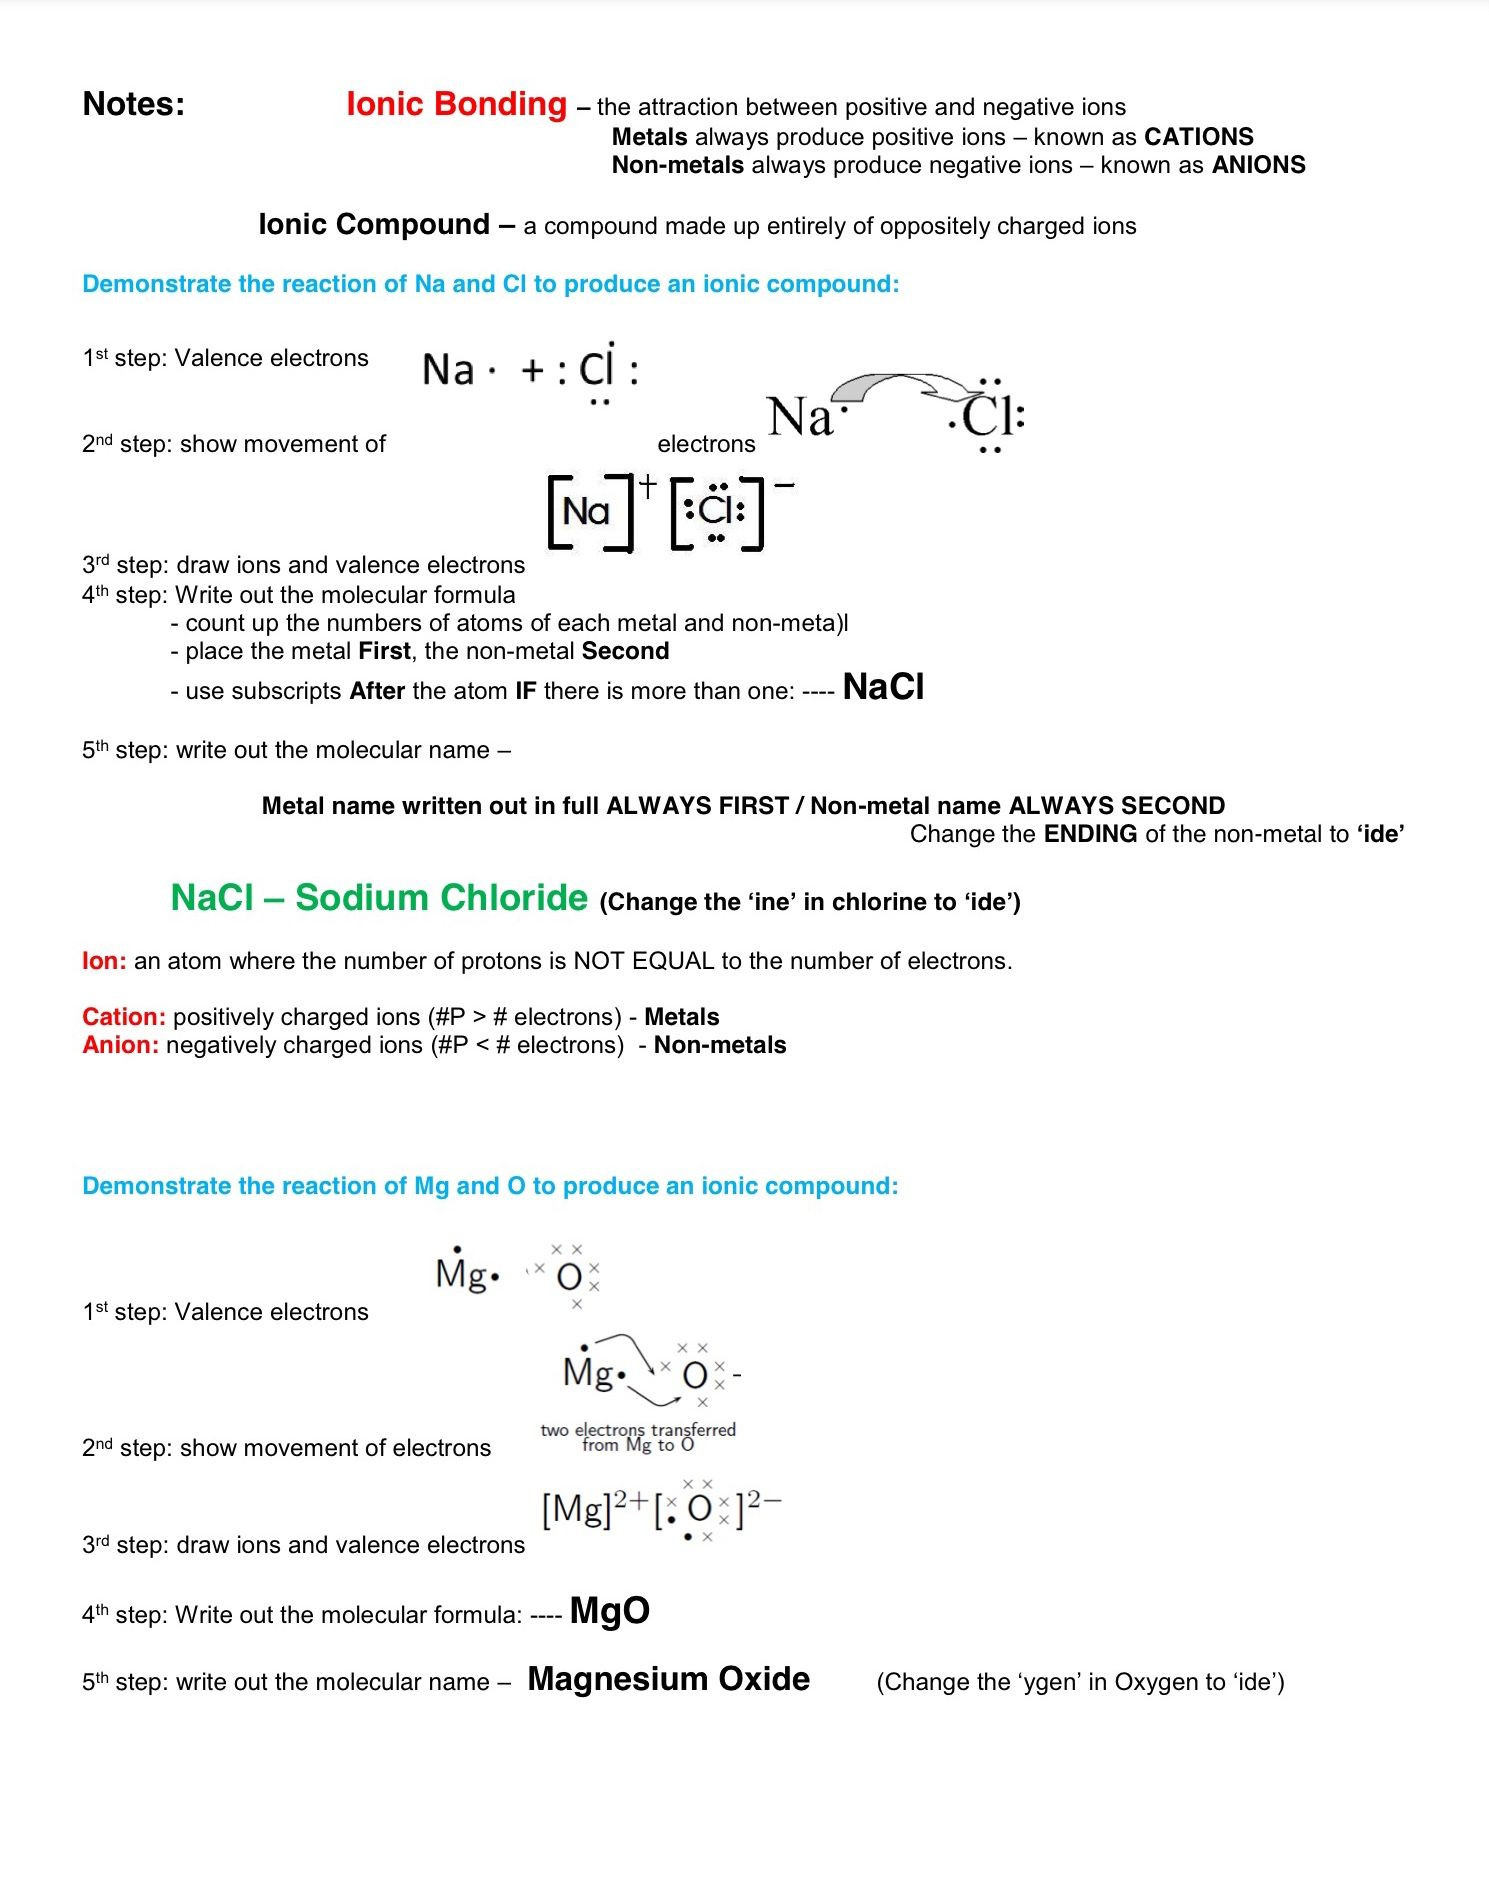 Ionic Bonding Worksheet Key Ionic Bonding Note November 14 2017